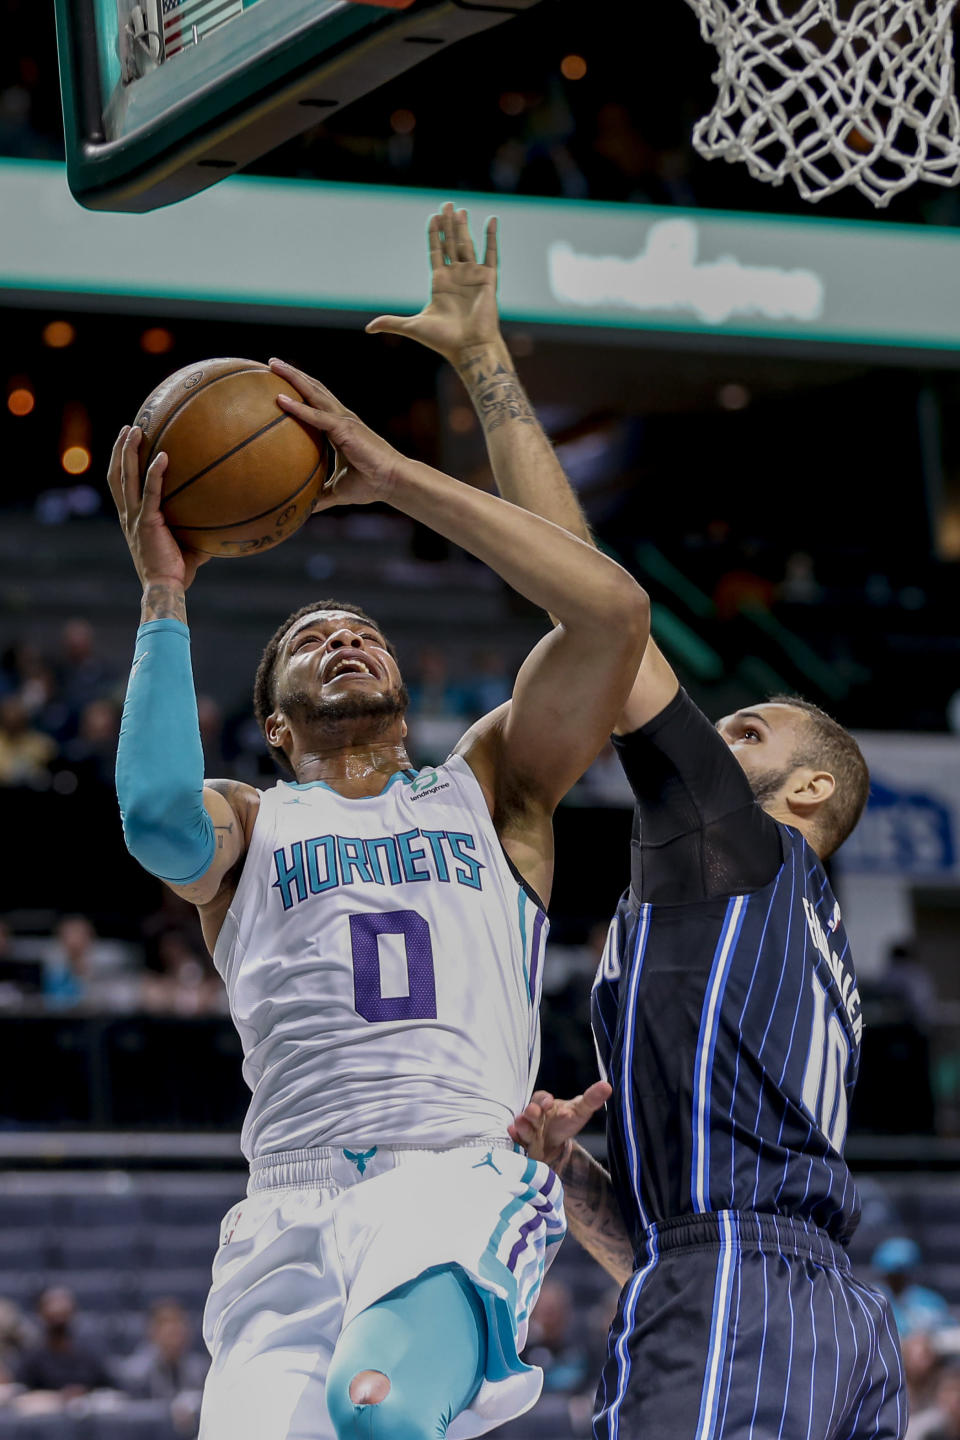 Charlotte Hornets forward Miles Bridges, left, shoots against Orlando Magic guard Evan Fournier in the first half of an NBA basketball game in Charlotte, N.C., Monday, Feb. 3, 2020. (AP Photo/Nell Redmond)